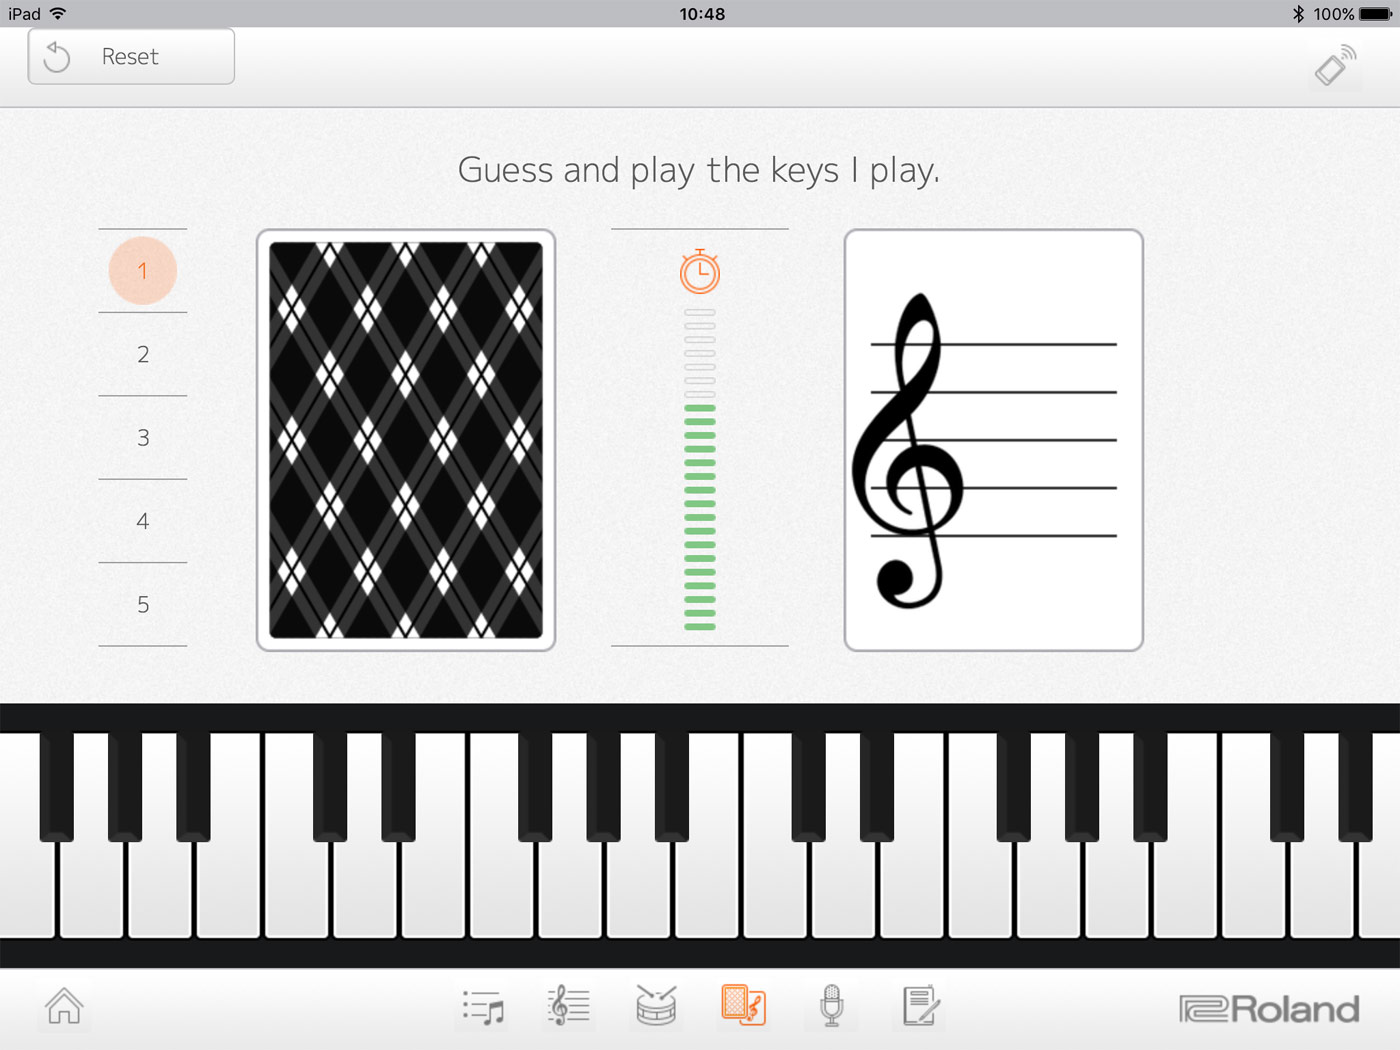 graphic regarding Piano Flash Cards Printable called Roland - Piano Lover 2 Variation 2.0 iOS/Android Application